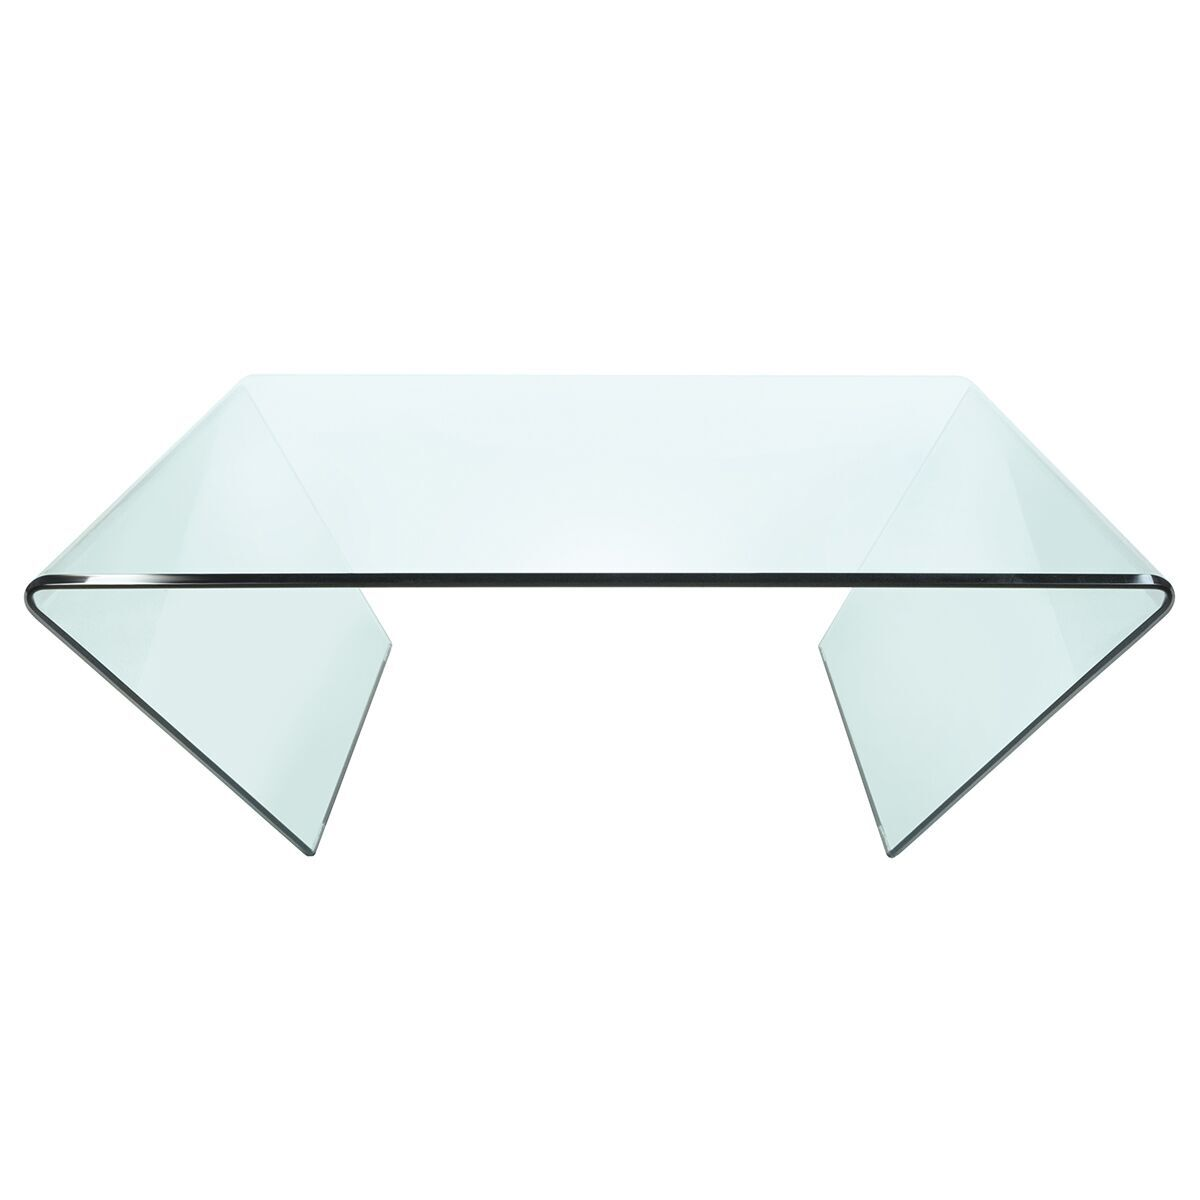 Horizon Clear Angled Glass Coffee Table Pure Glass From Fads [ 1200 x 1200 Pixel ]